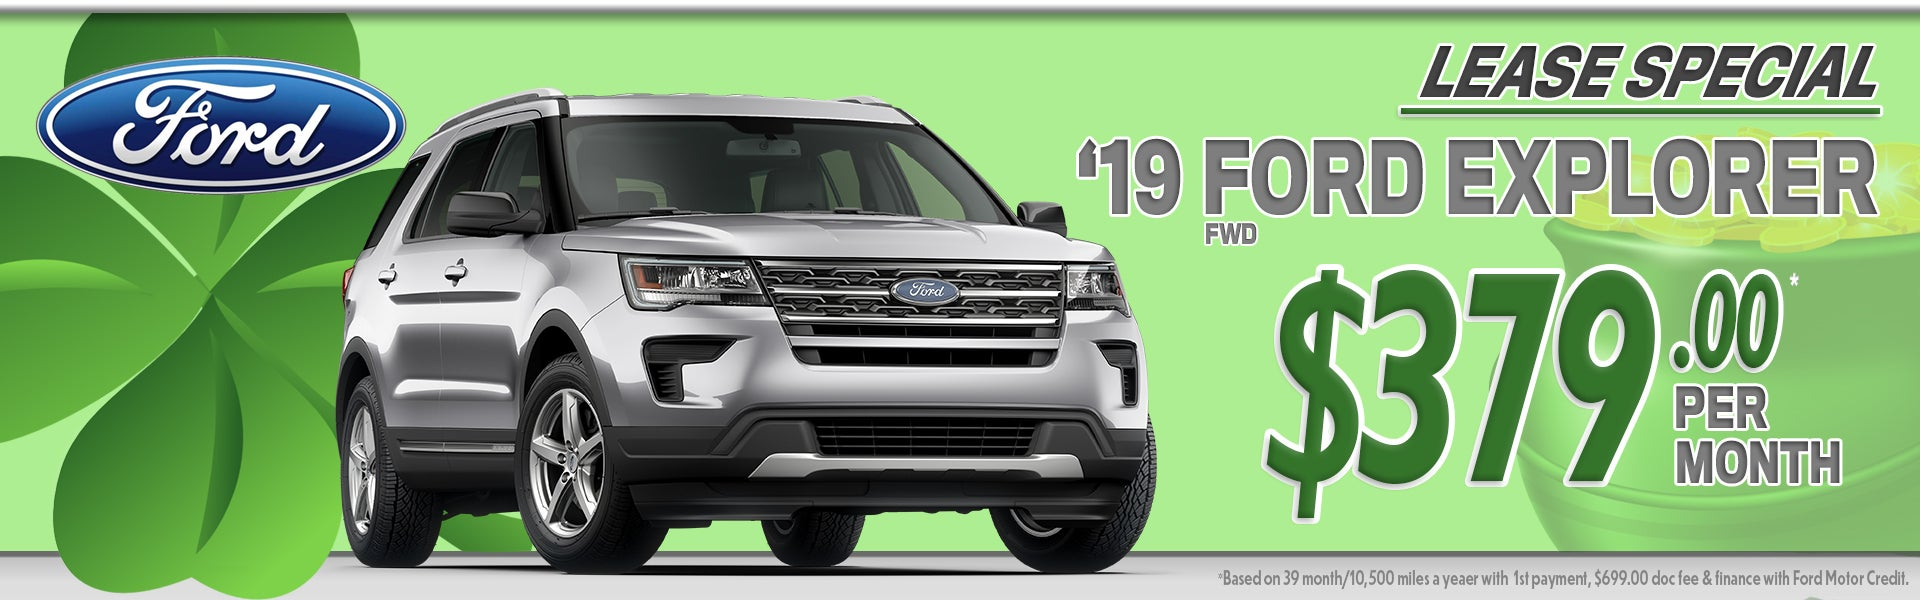 lease a 2019 ford explorer | crossroads ford of cary specials cary, nc